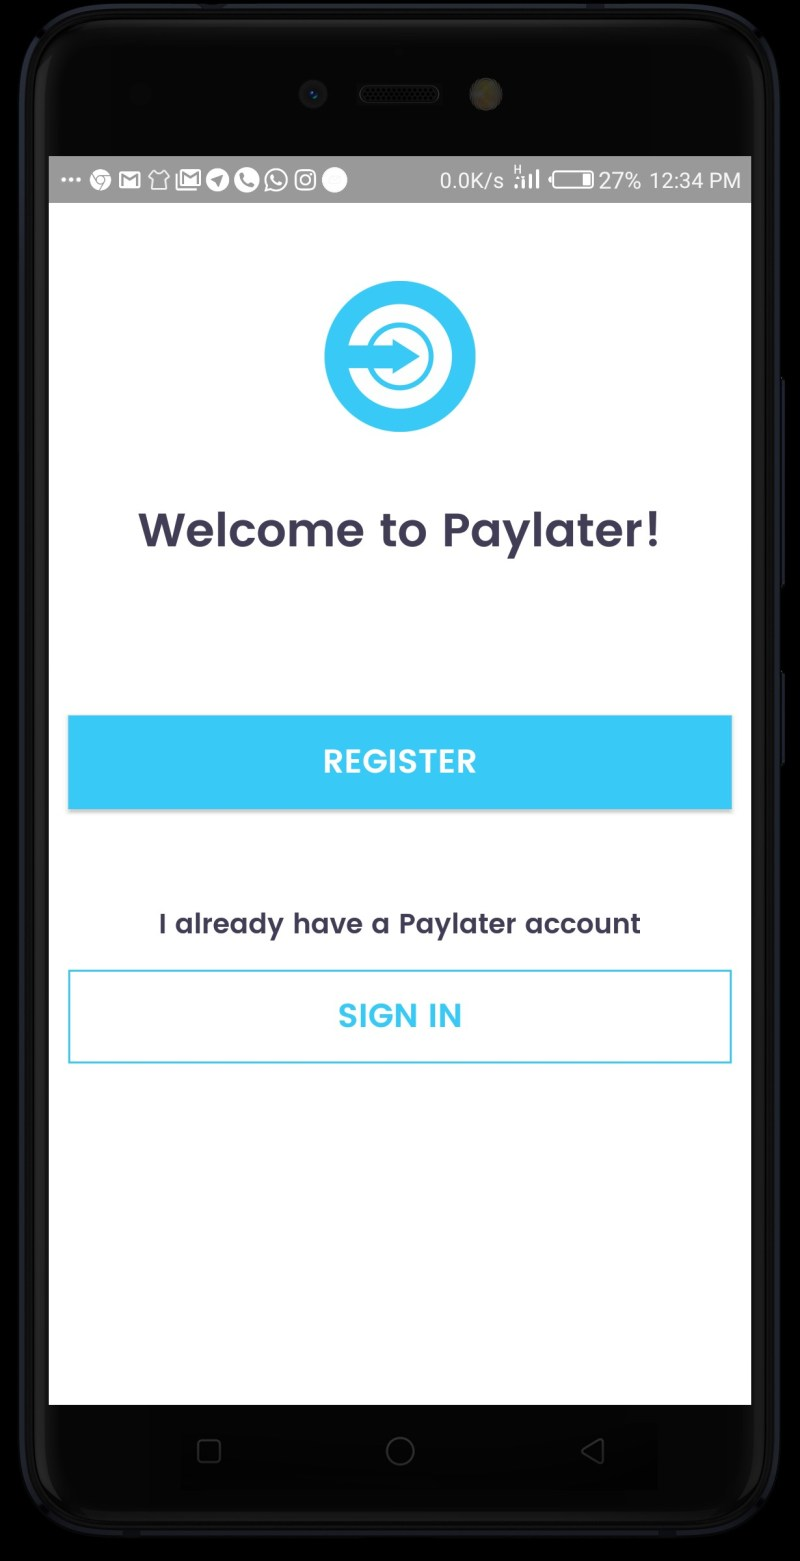 Welcome to PayLater app